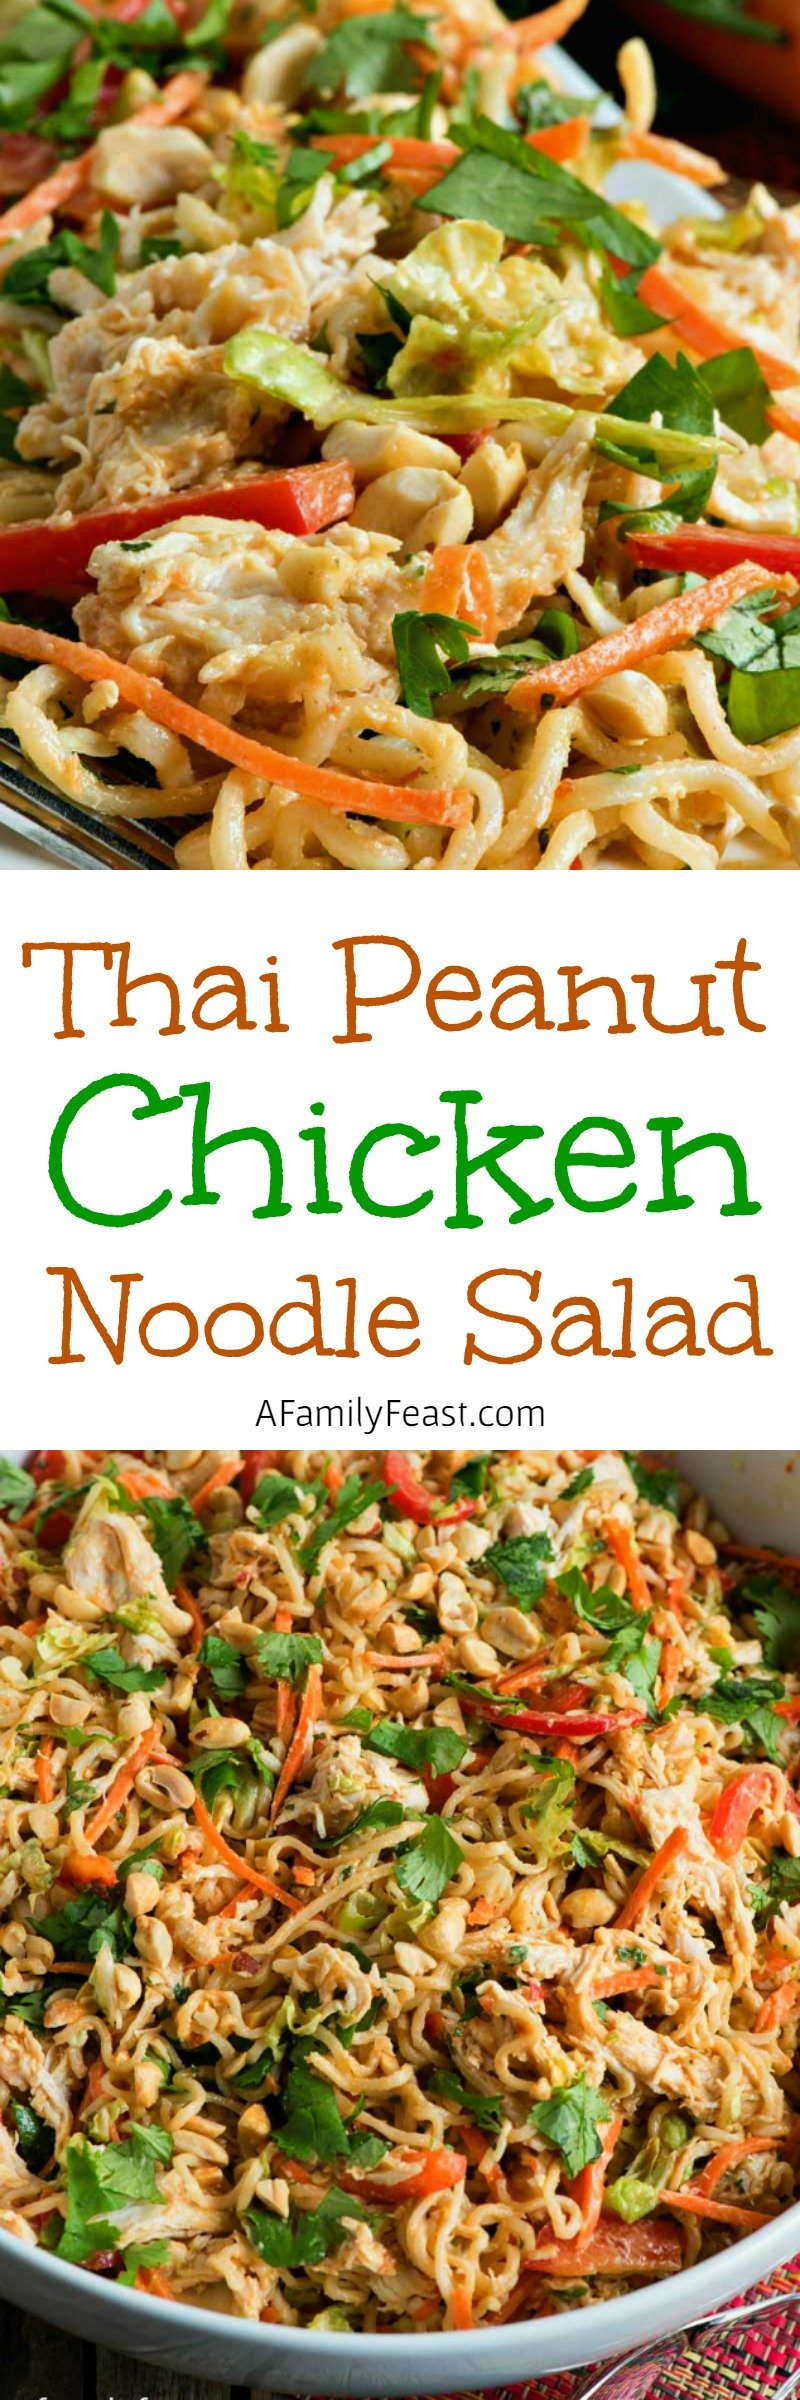 Thai Peanut Chicken Noodle Salad - A delicious, make ahead salad that is a filling meal in itself.